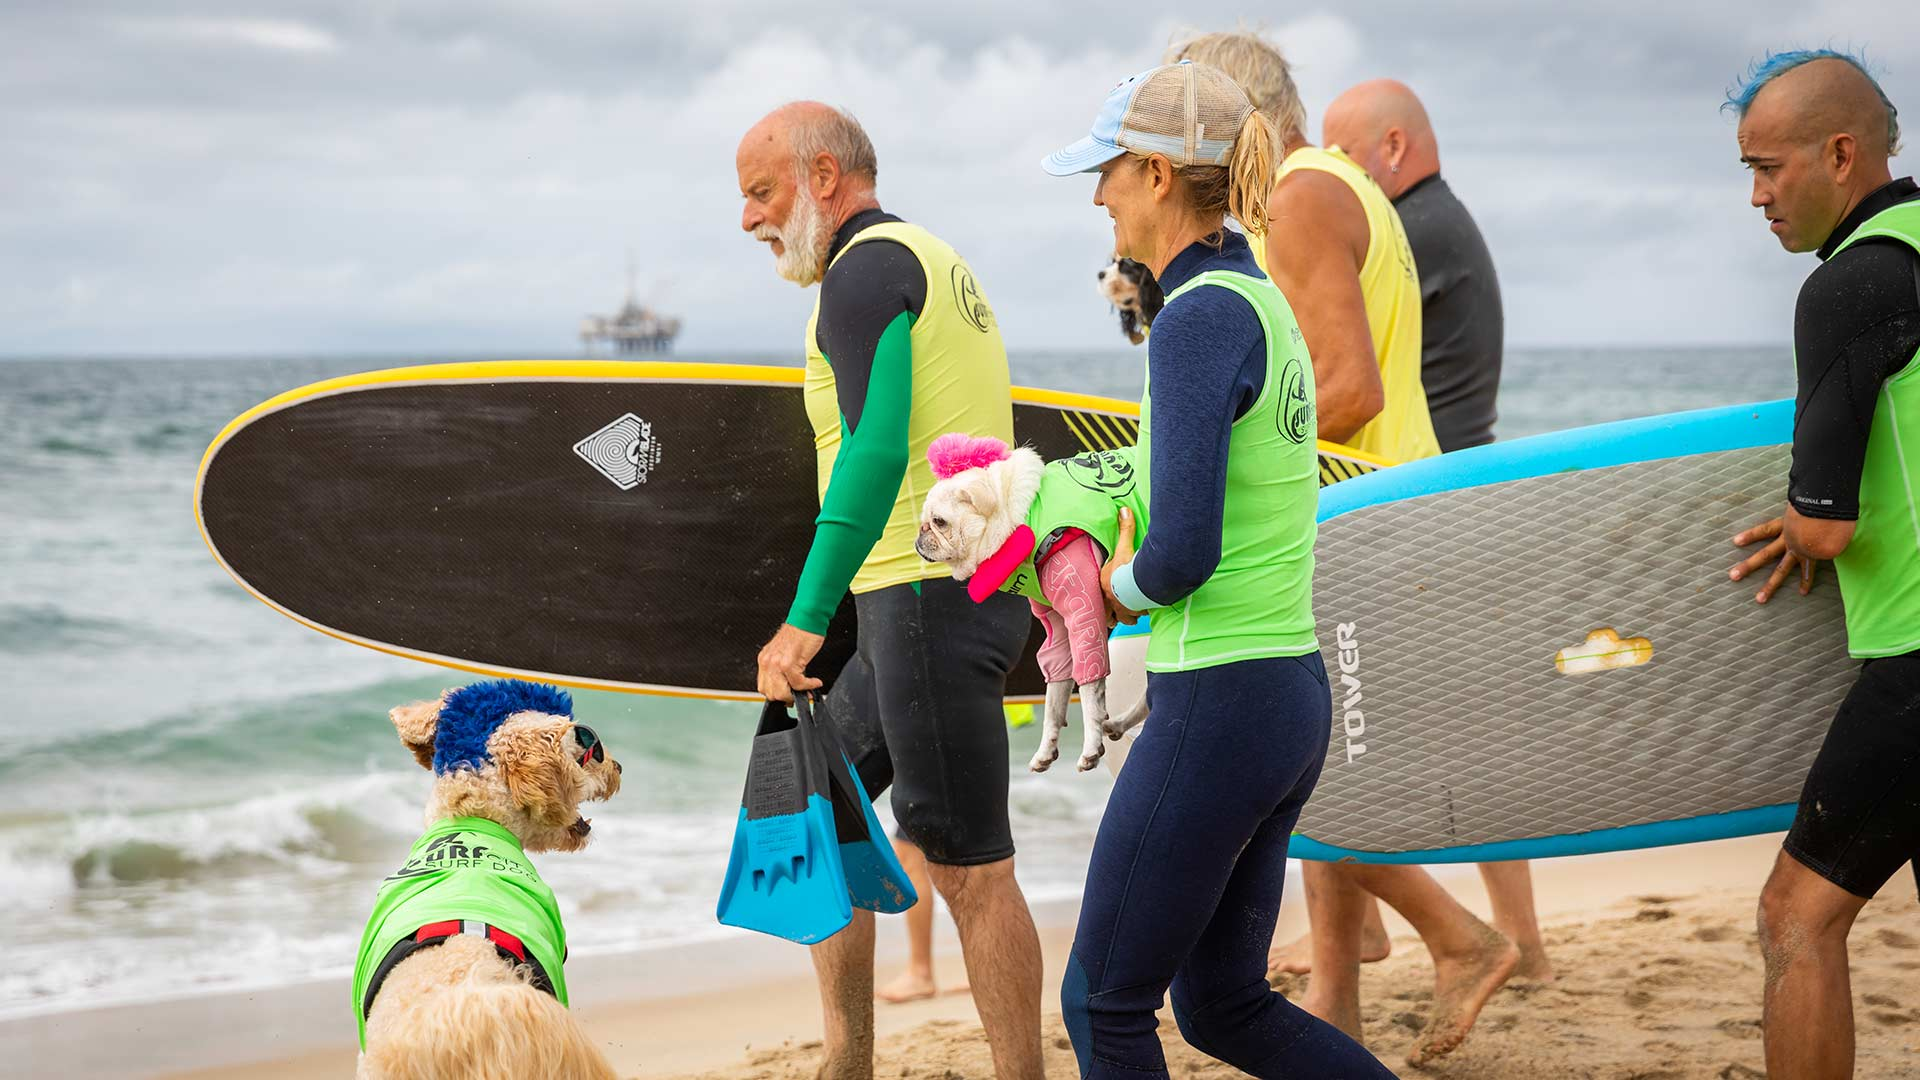 A group of surfers head to the water with dogs with blue and pink mohawks